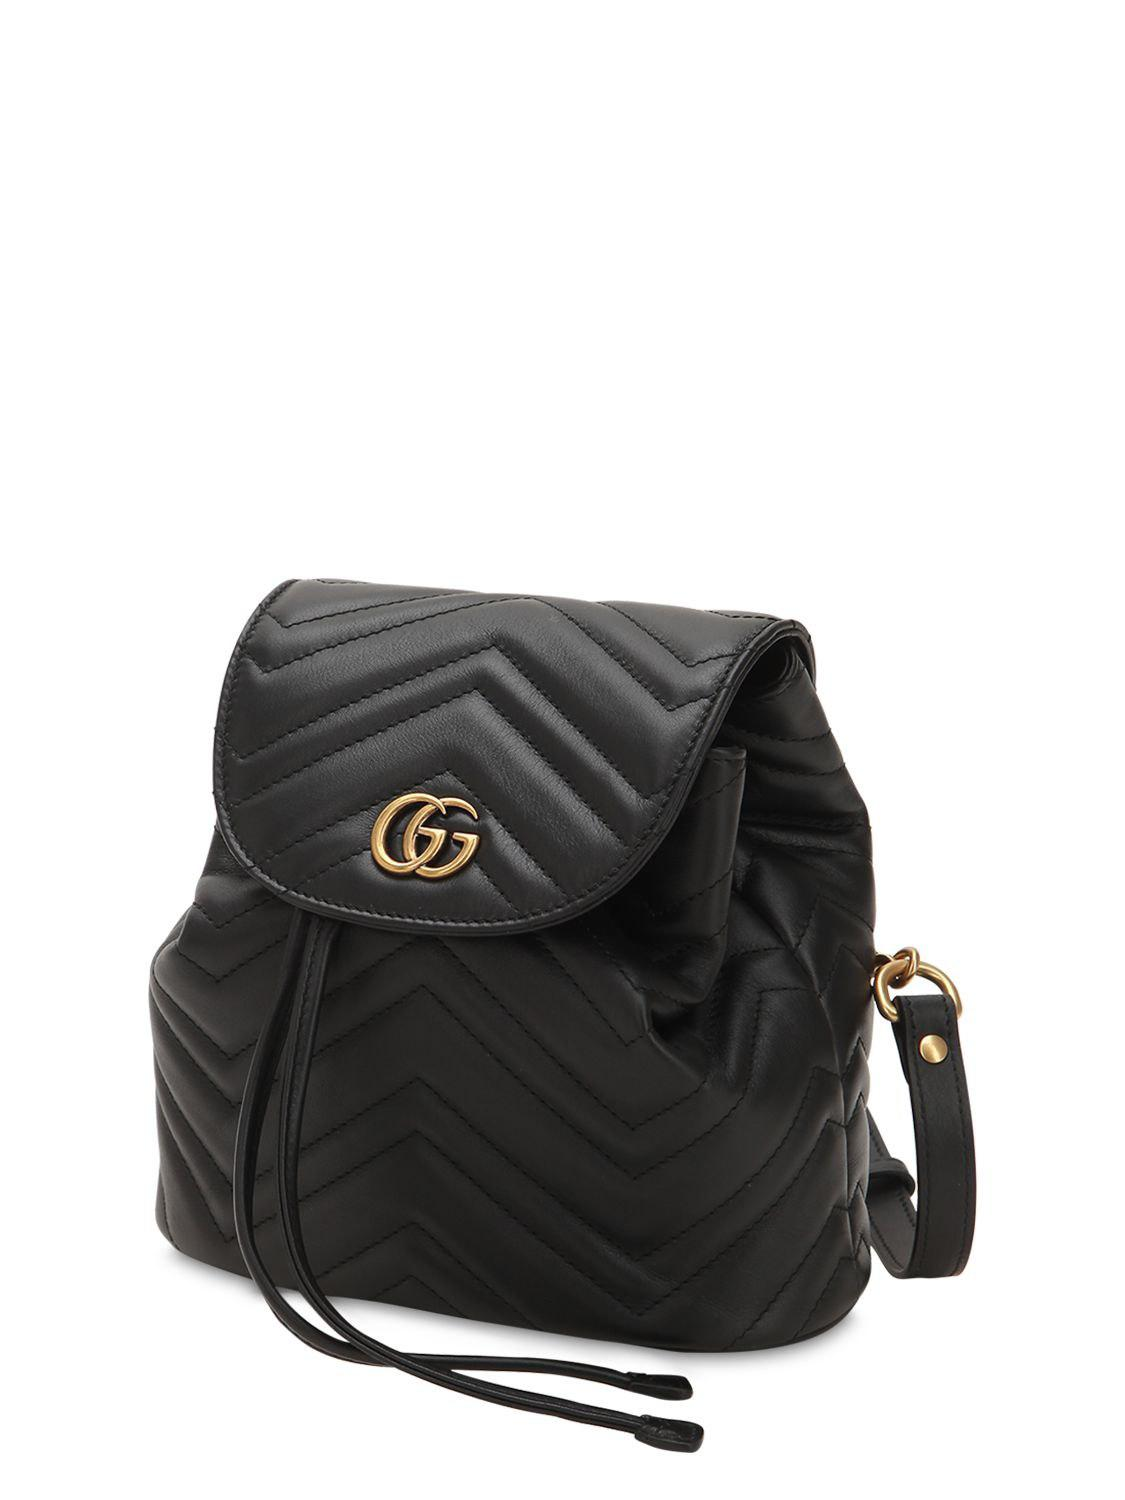 ca0cc43f0ae2 Gucci - Black Mini Gg Marmont Leather Backpack - Lyst. View fullscreen